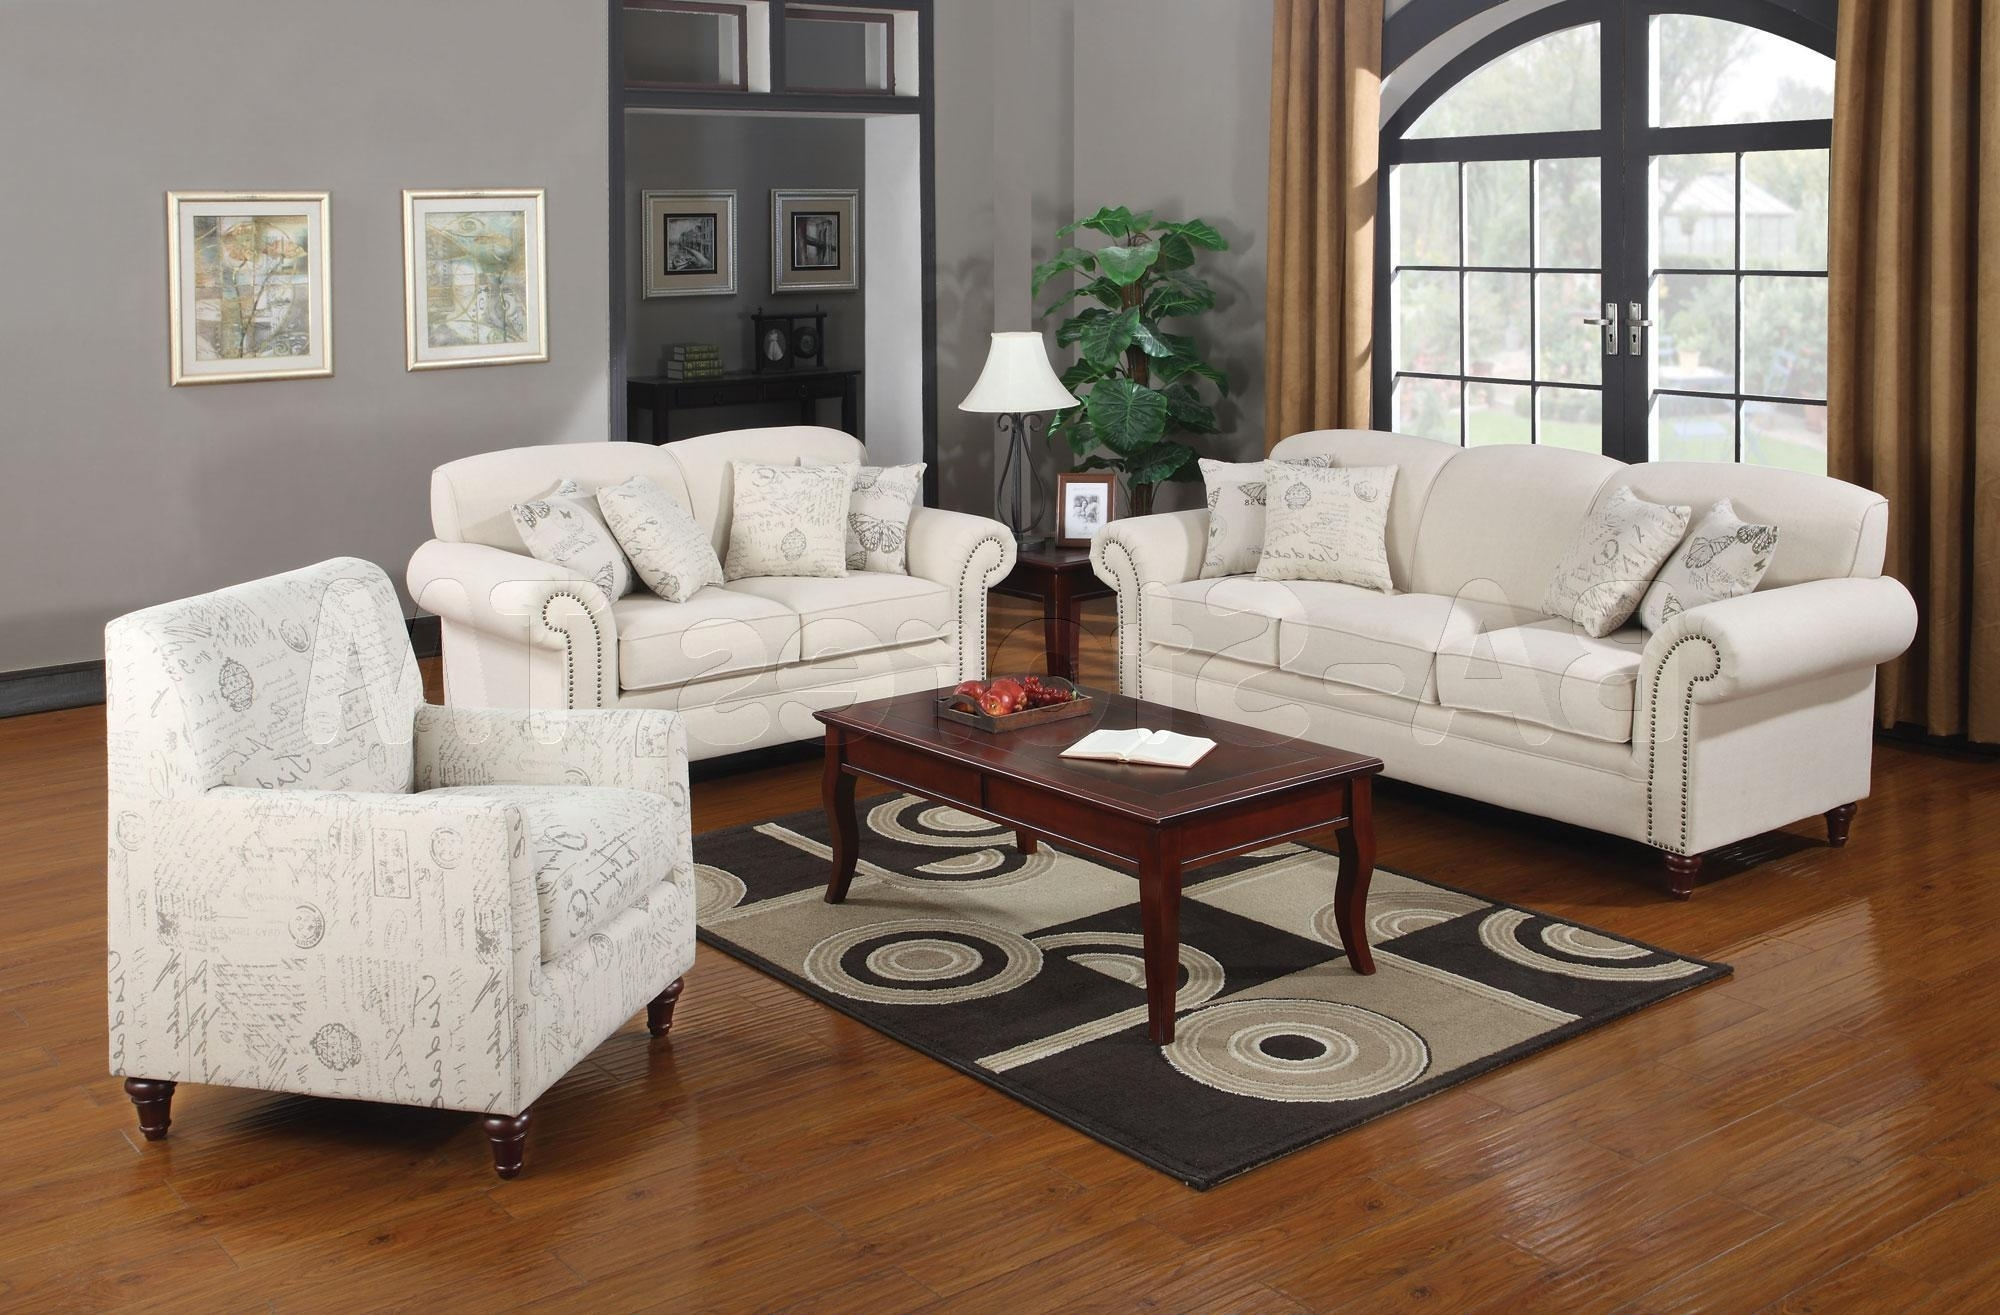 Newest Living Room Sofa And Chair Sets Intended For Furniture: Good Living Room Sets Near Me Ashley Furniture Living (View 18 of 20)